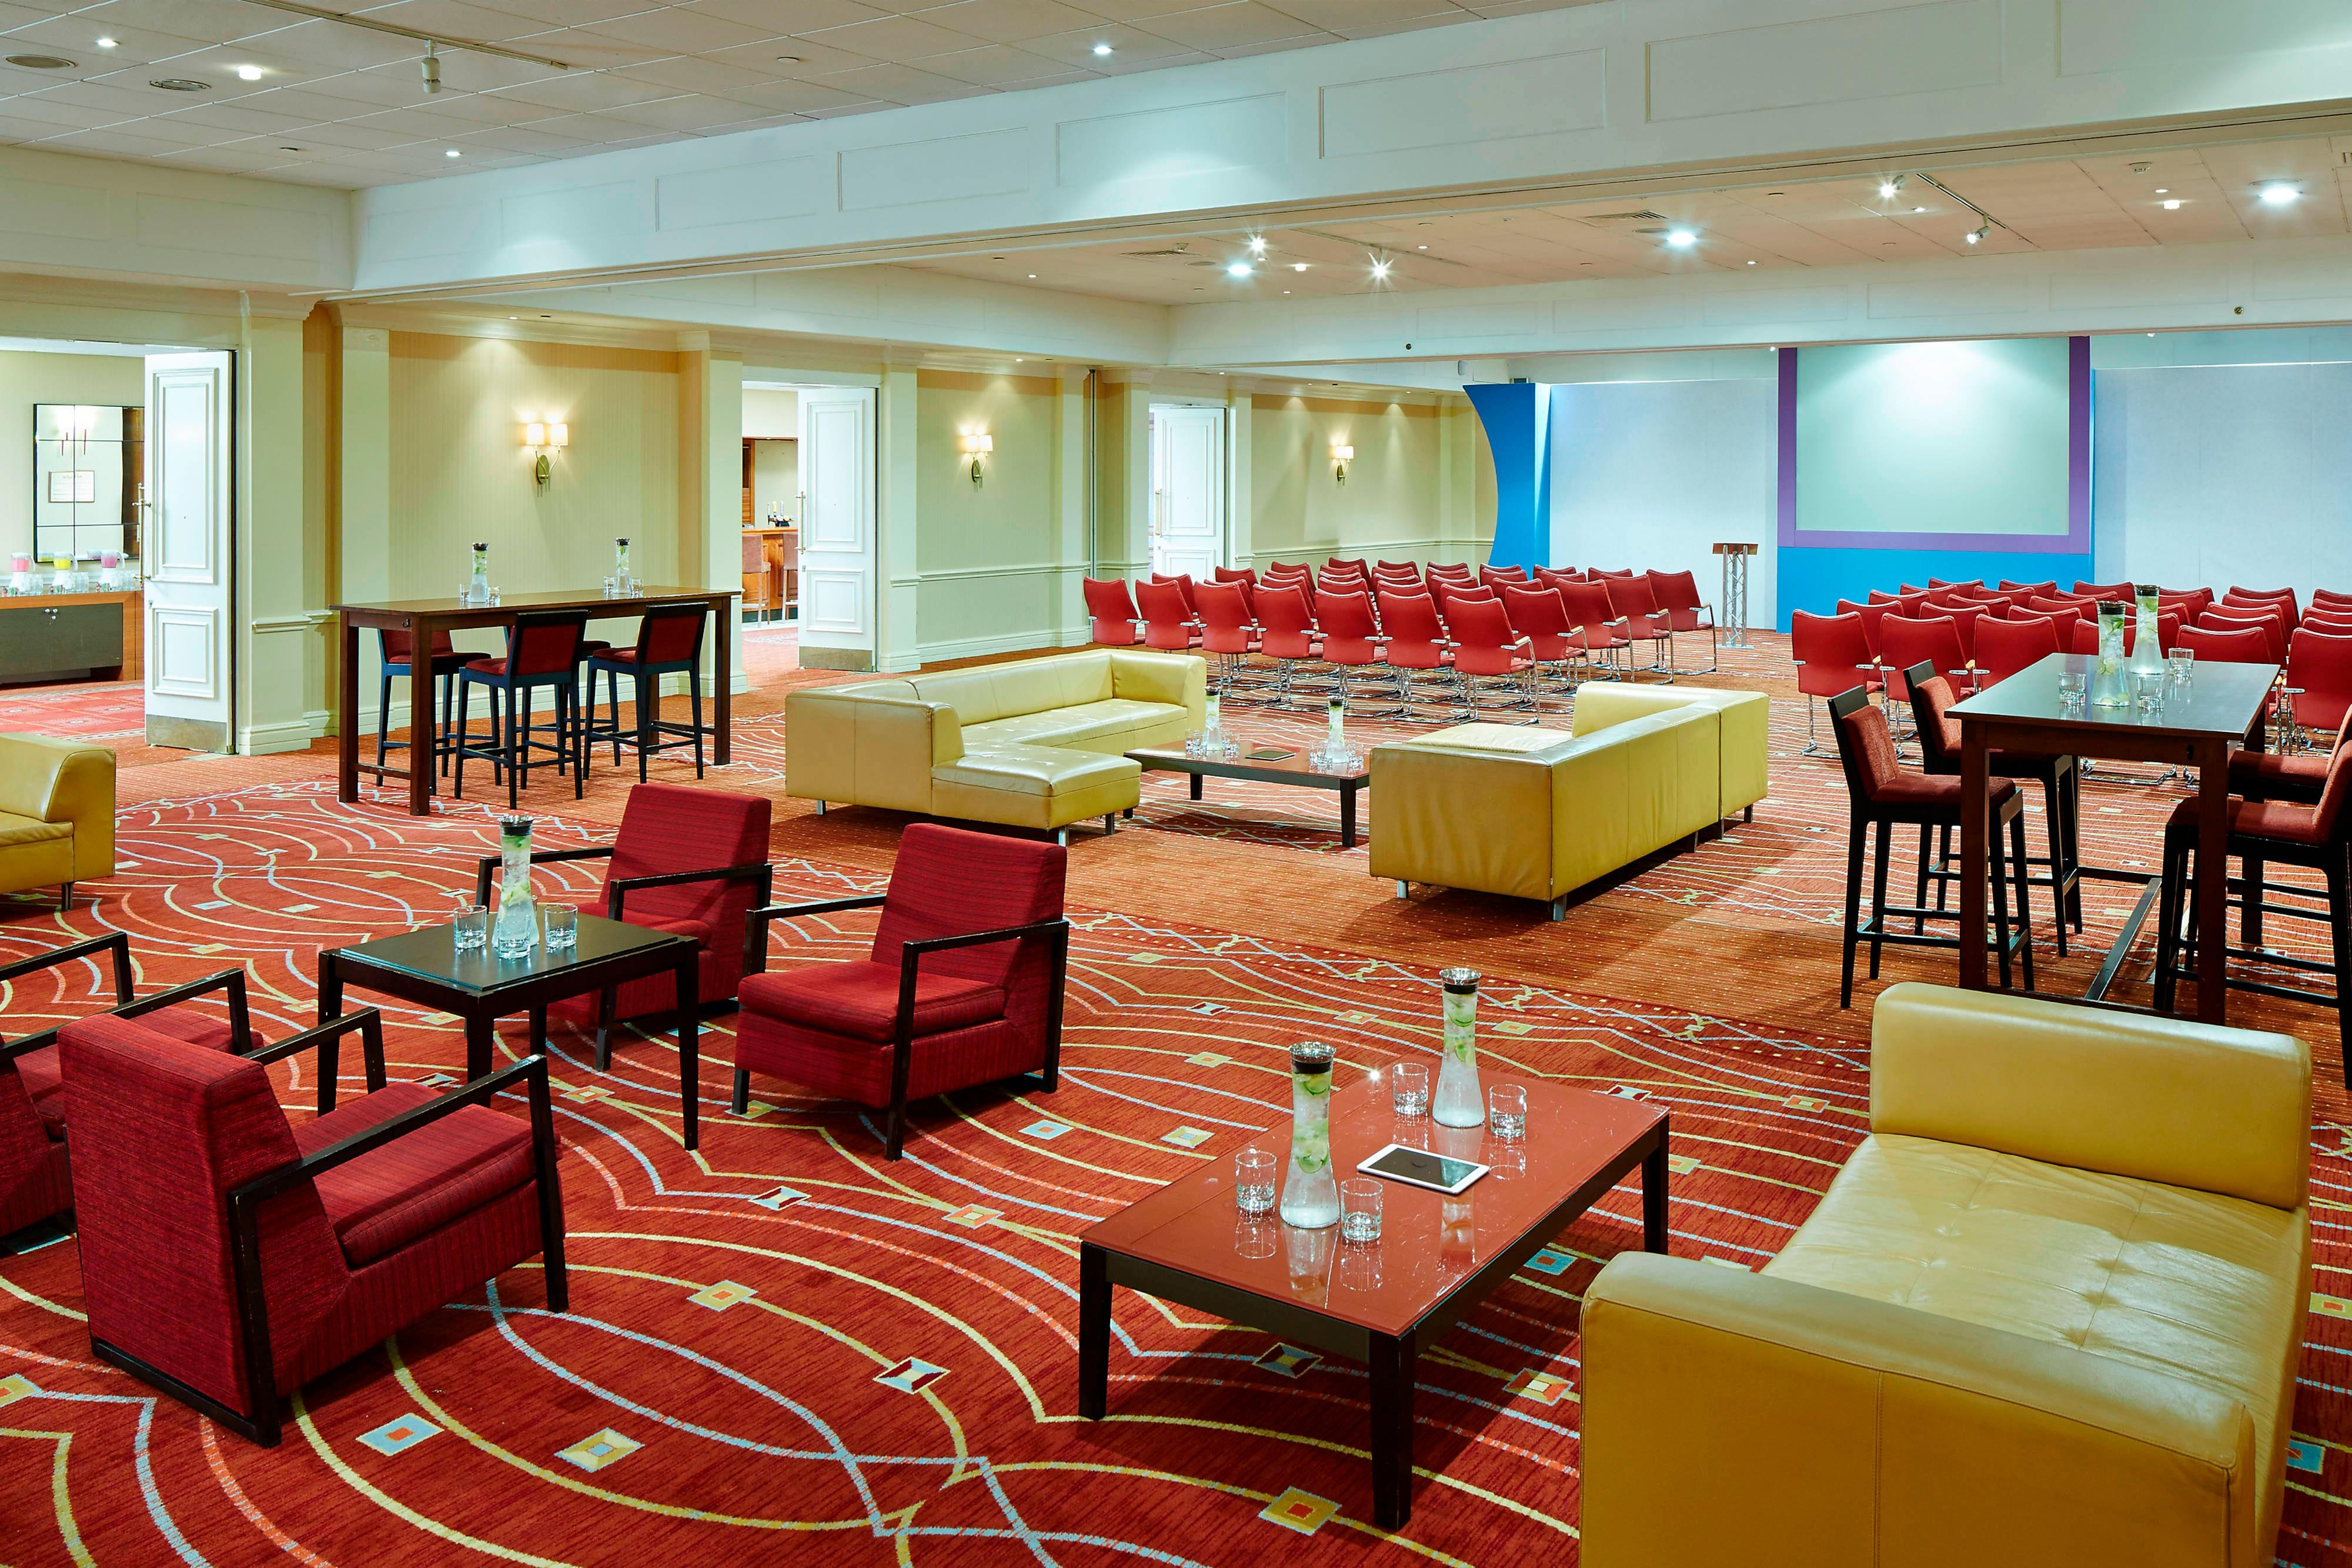 Sala de reuniones del Heathrow/Windsor Marriott Hotel